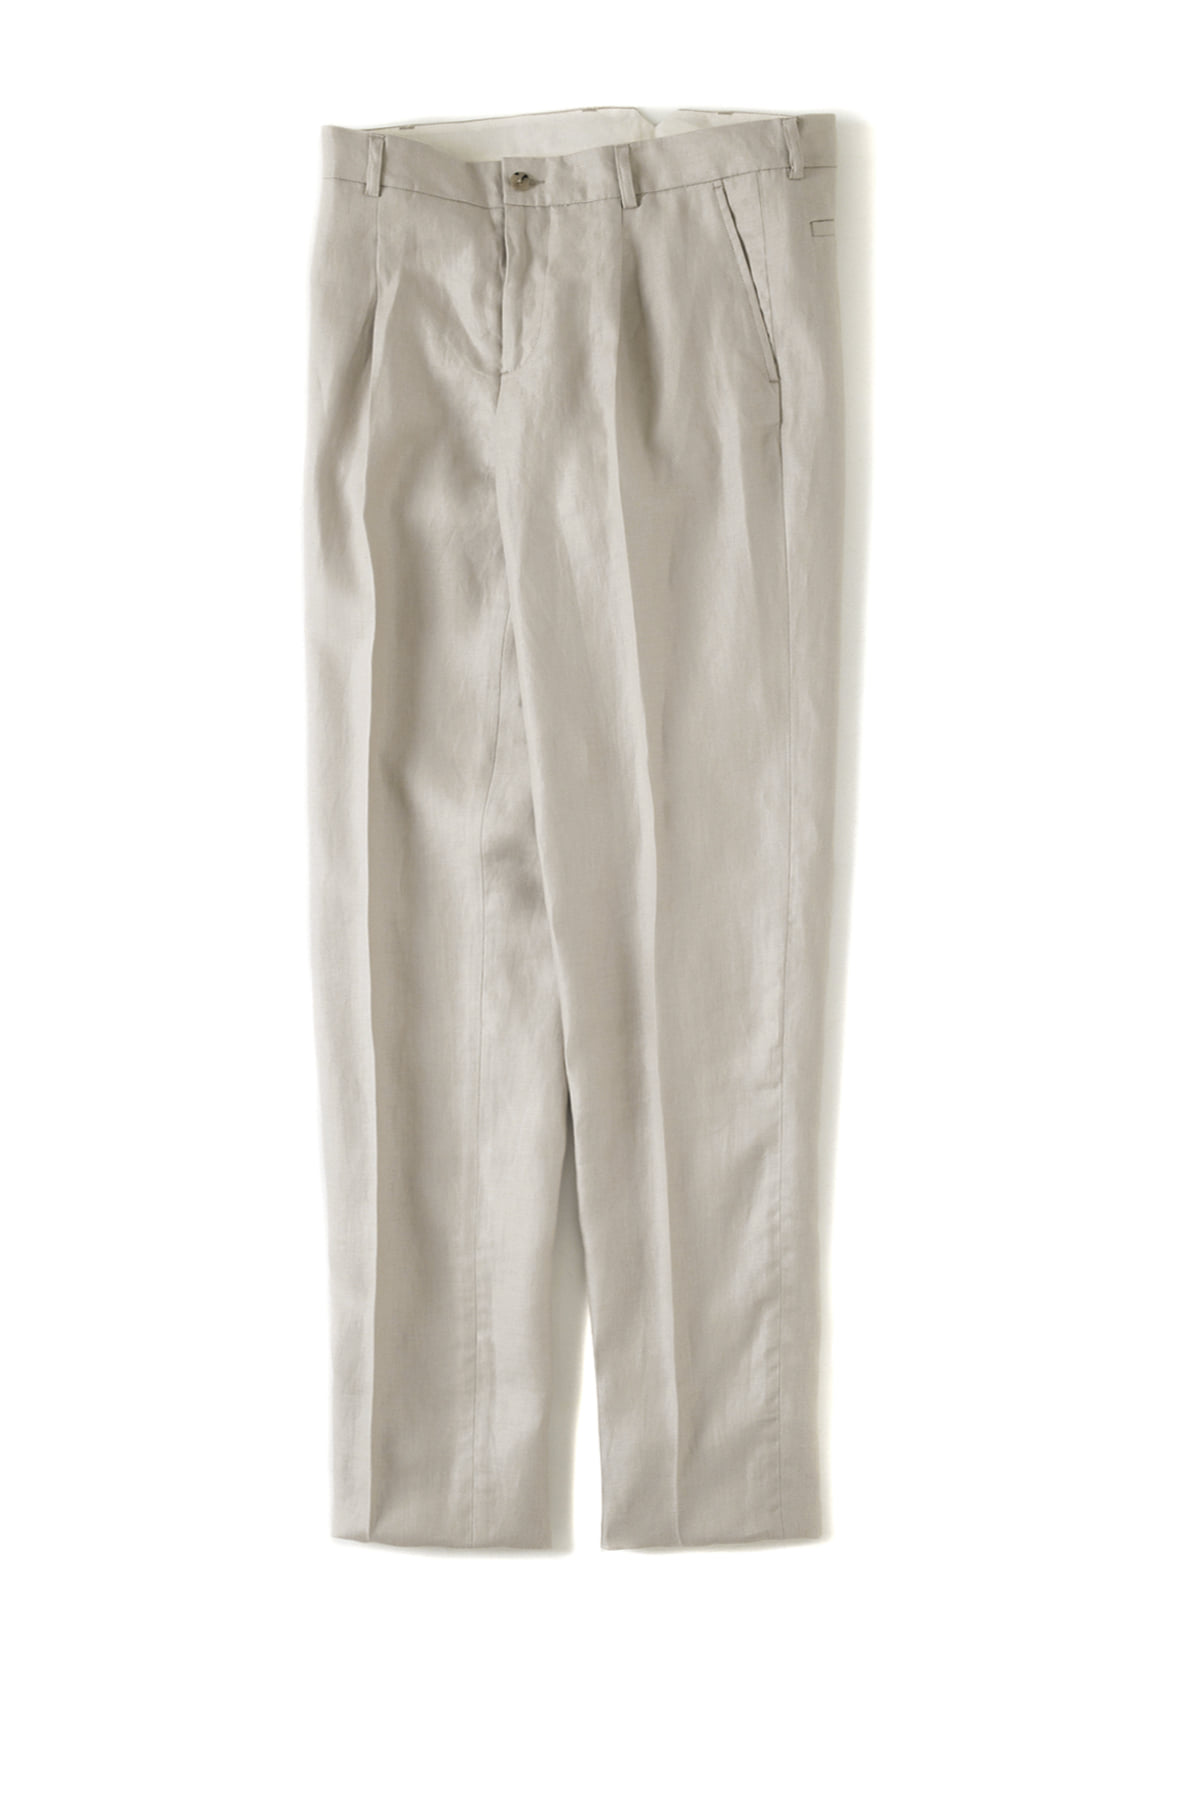 de bonne facture : One Pleat Trousers (Sand)